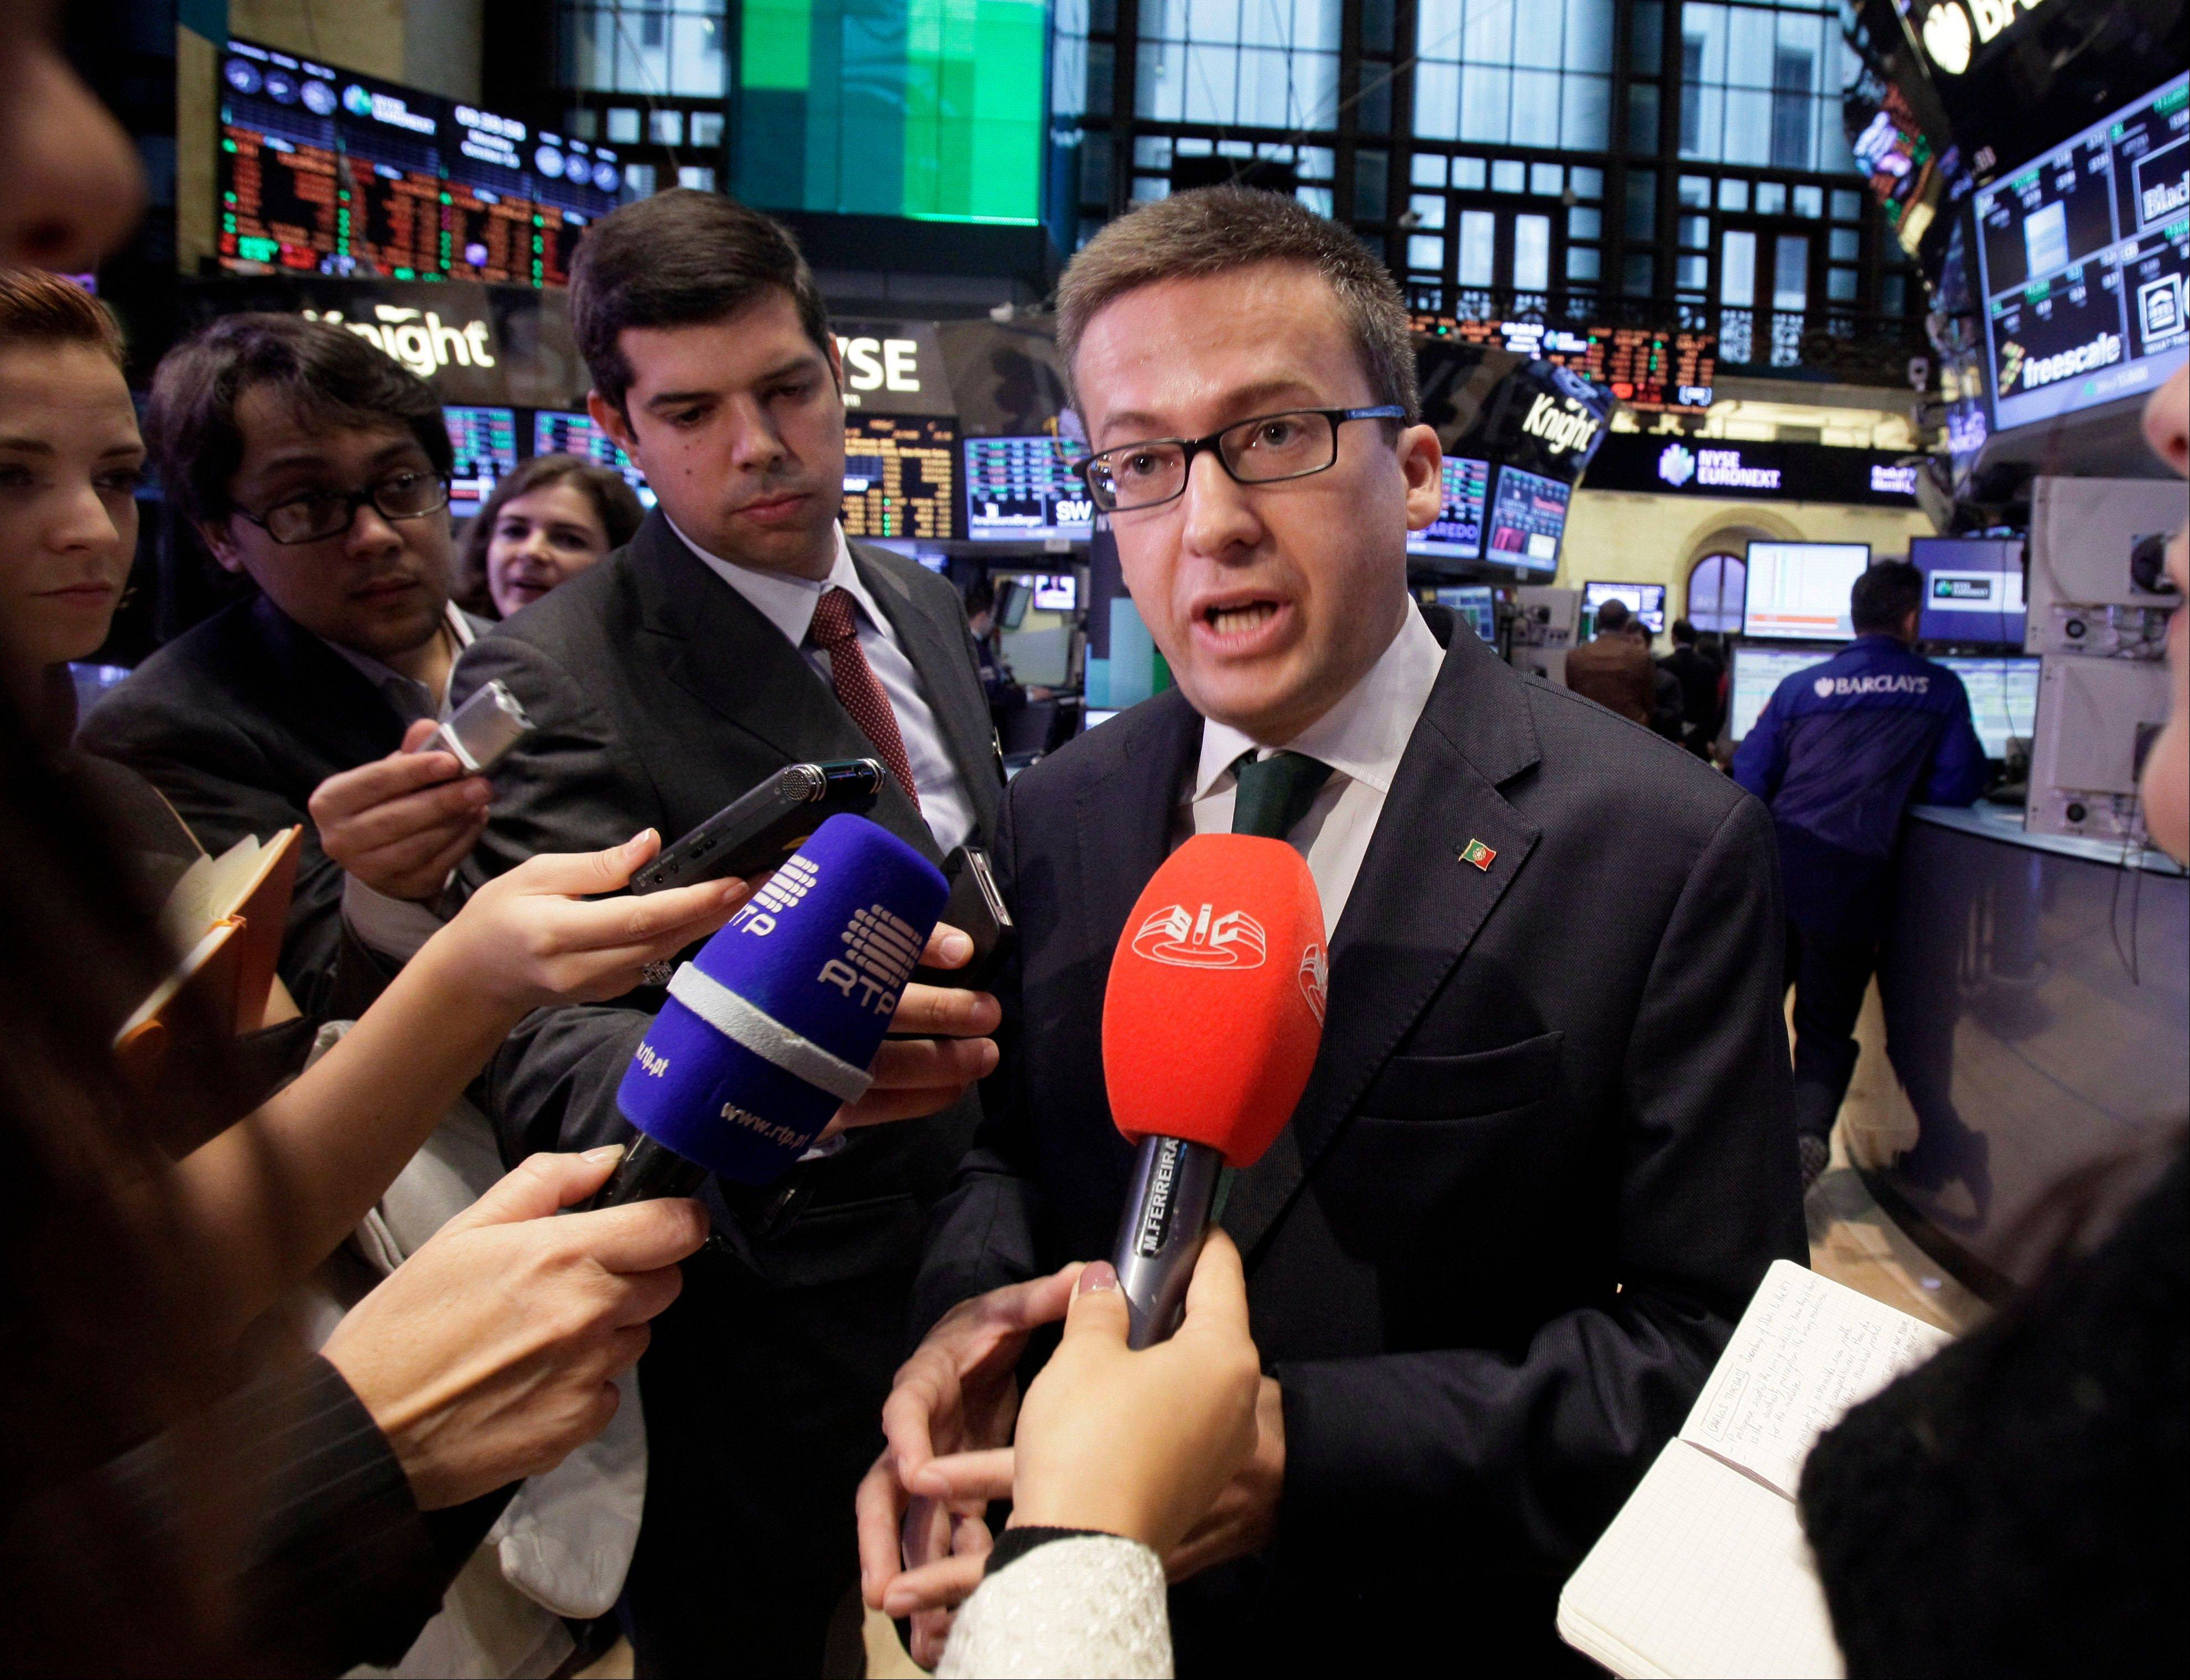 Portuguese Secretary of State to the Prime Minister Carlos Moedas is interviewed on the trading floor during the fourth annual Portugal Day at the New York Stock Exchange Monday. U.S. stocks rose, as the Standard & Poor's 500 Index rebounded from its biggest weekly drop in four months, after American retail sales and Citigroup Inc.'s earnings topped estimates.